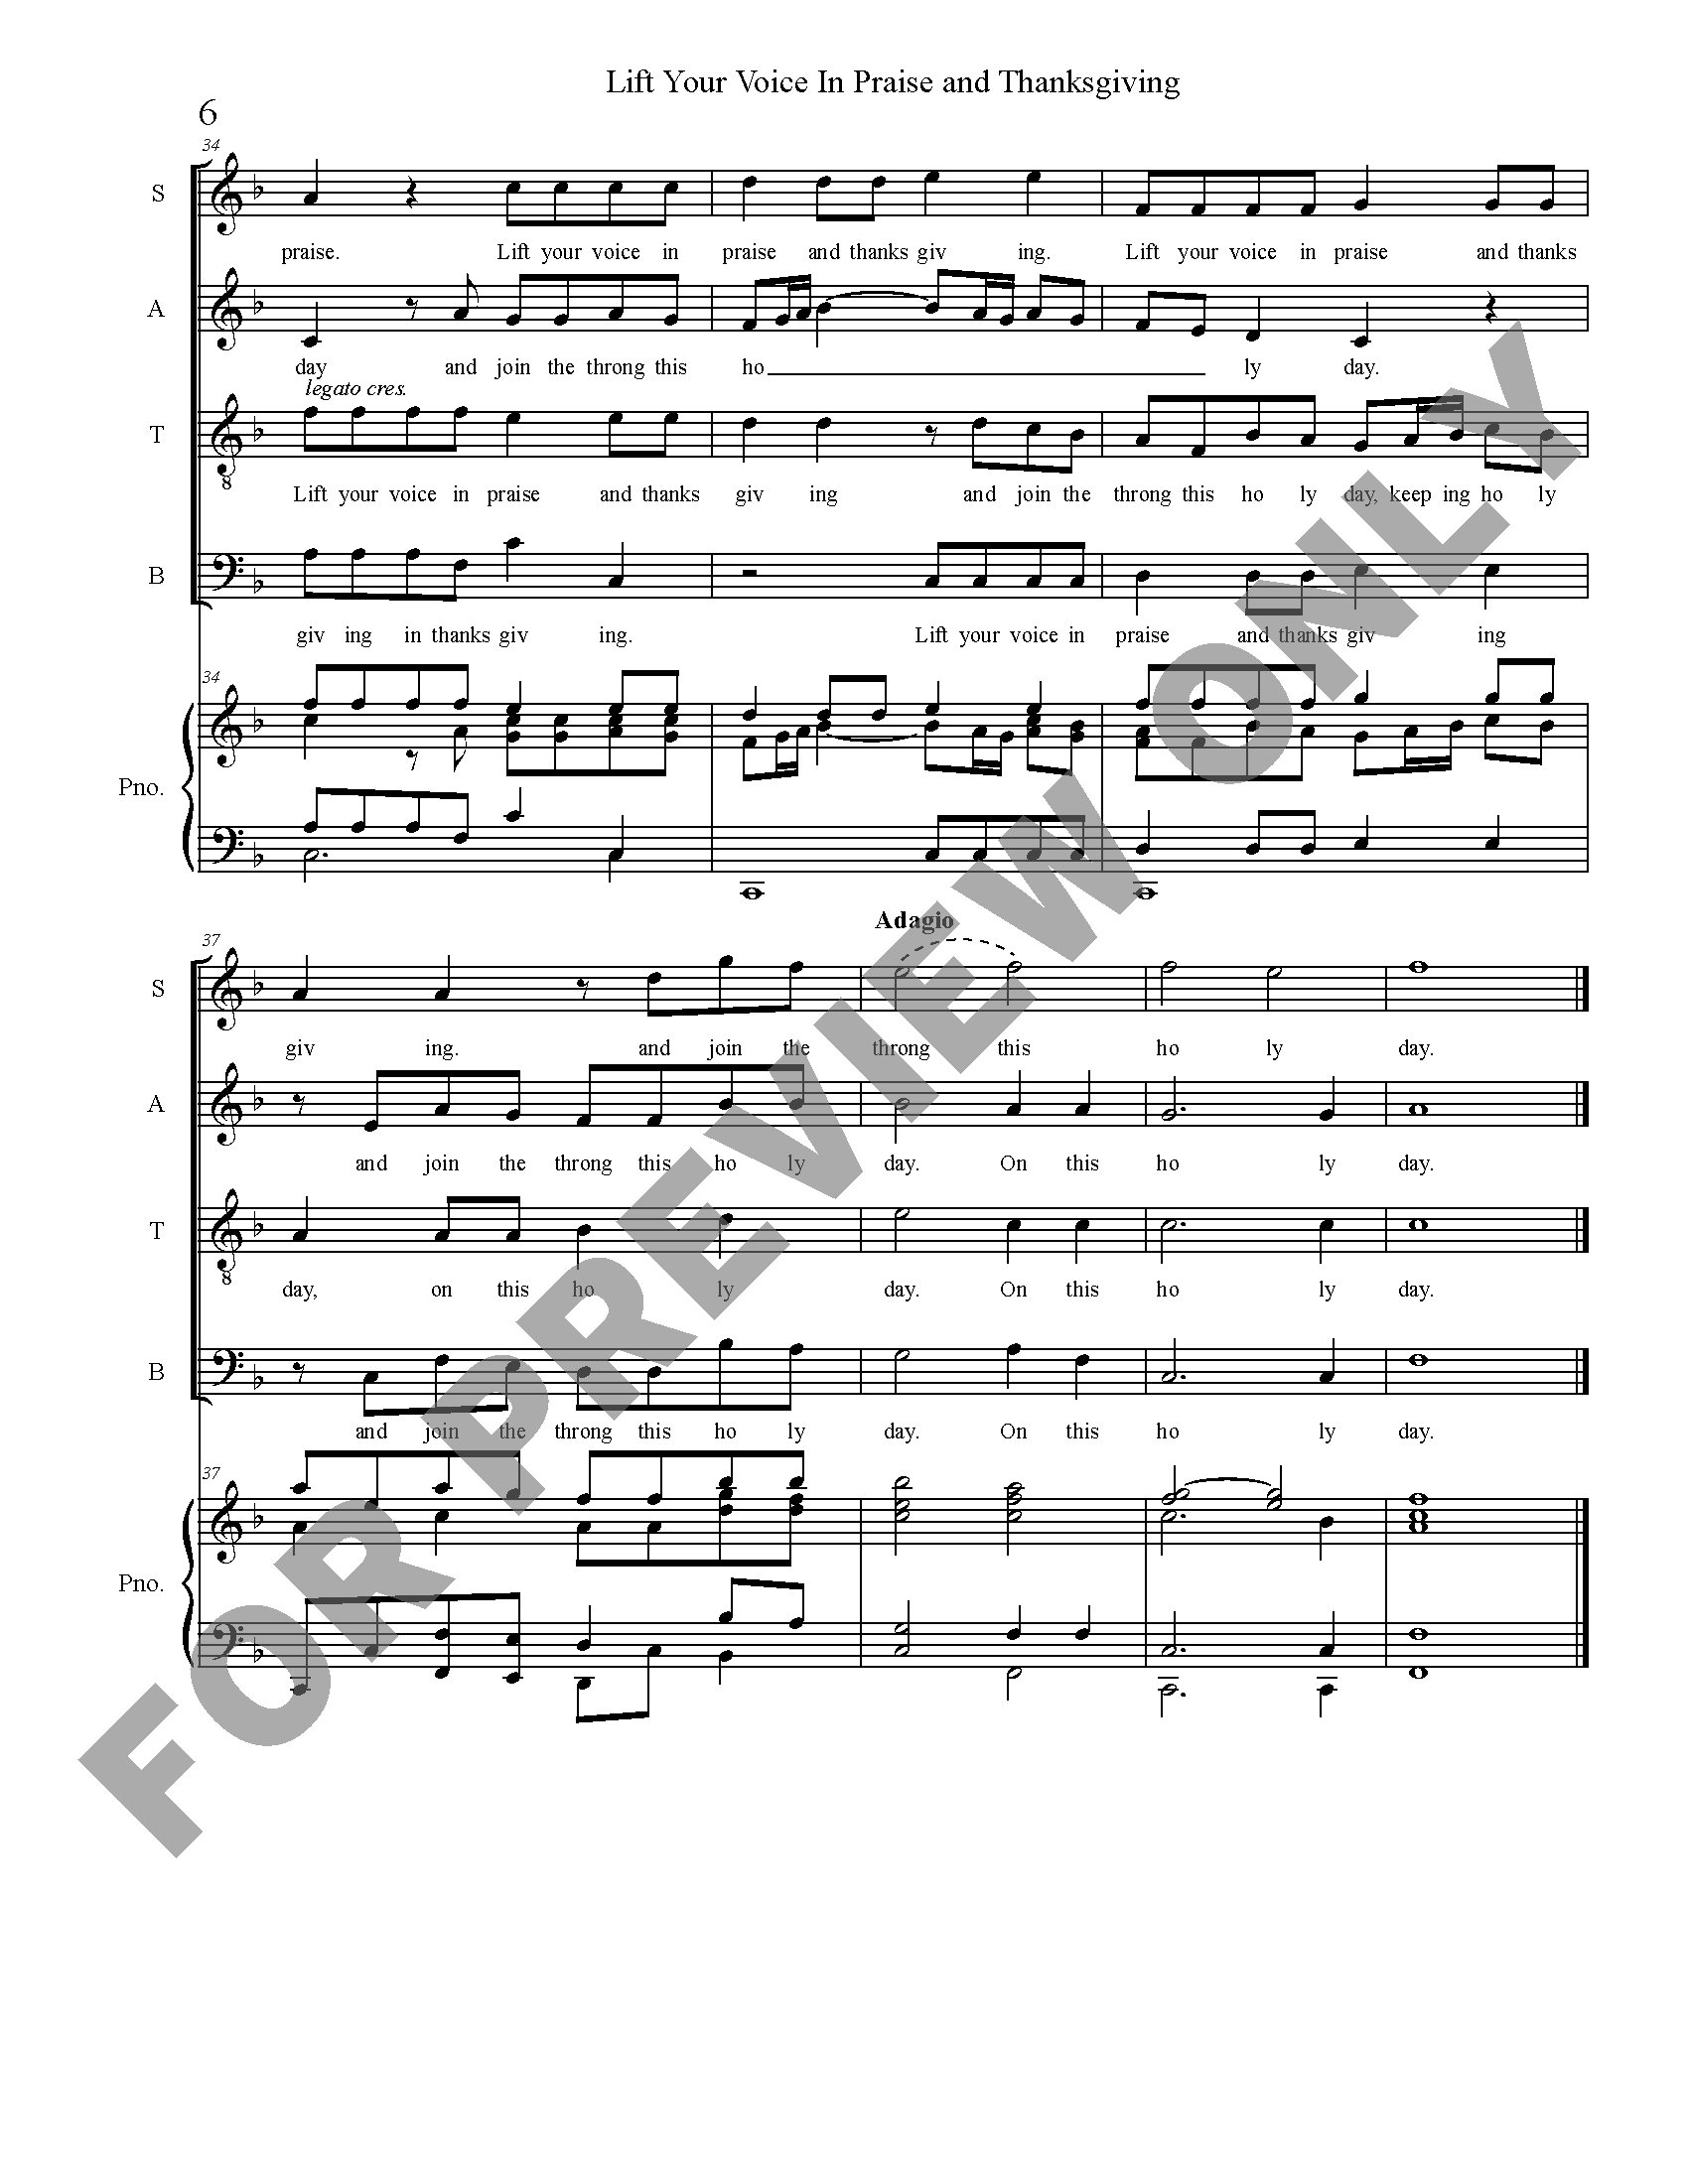 lift-your-voice_perusal_Page_6